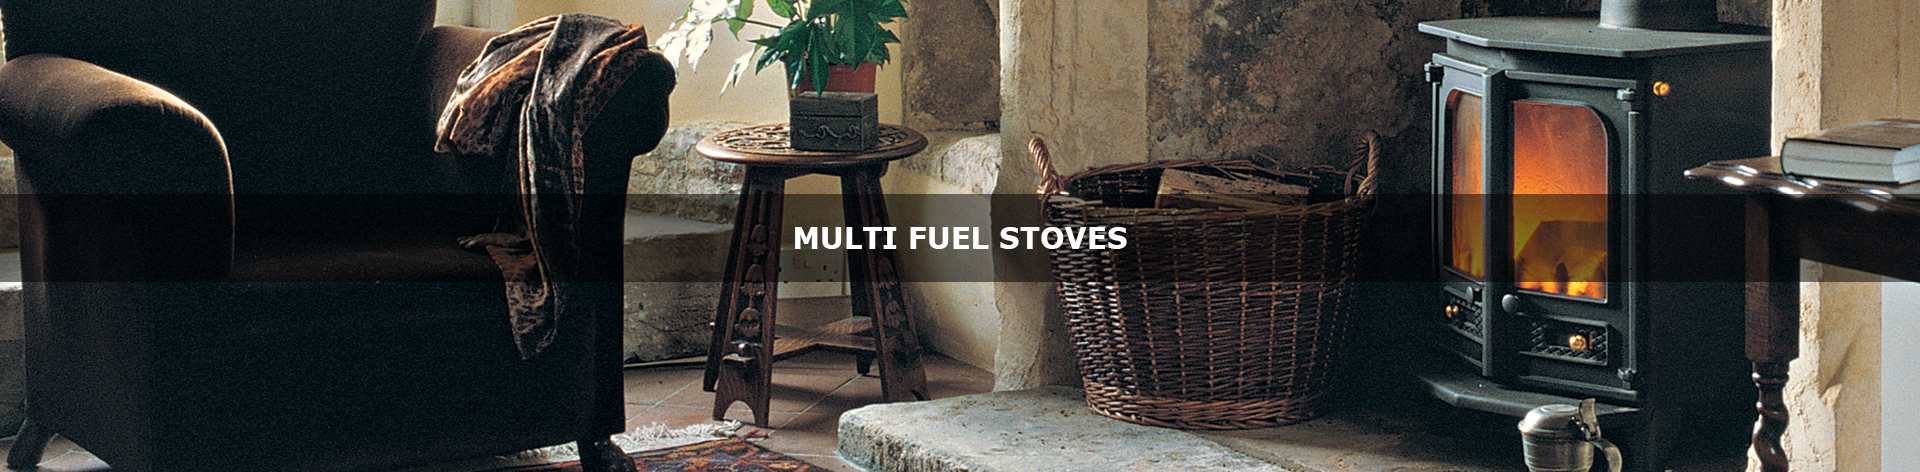 Multi Fuel Stoves Glasgow - Stove World Glasgow Scotland